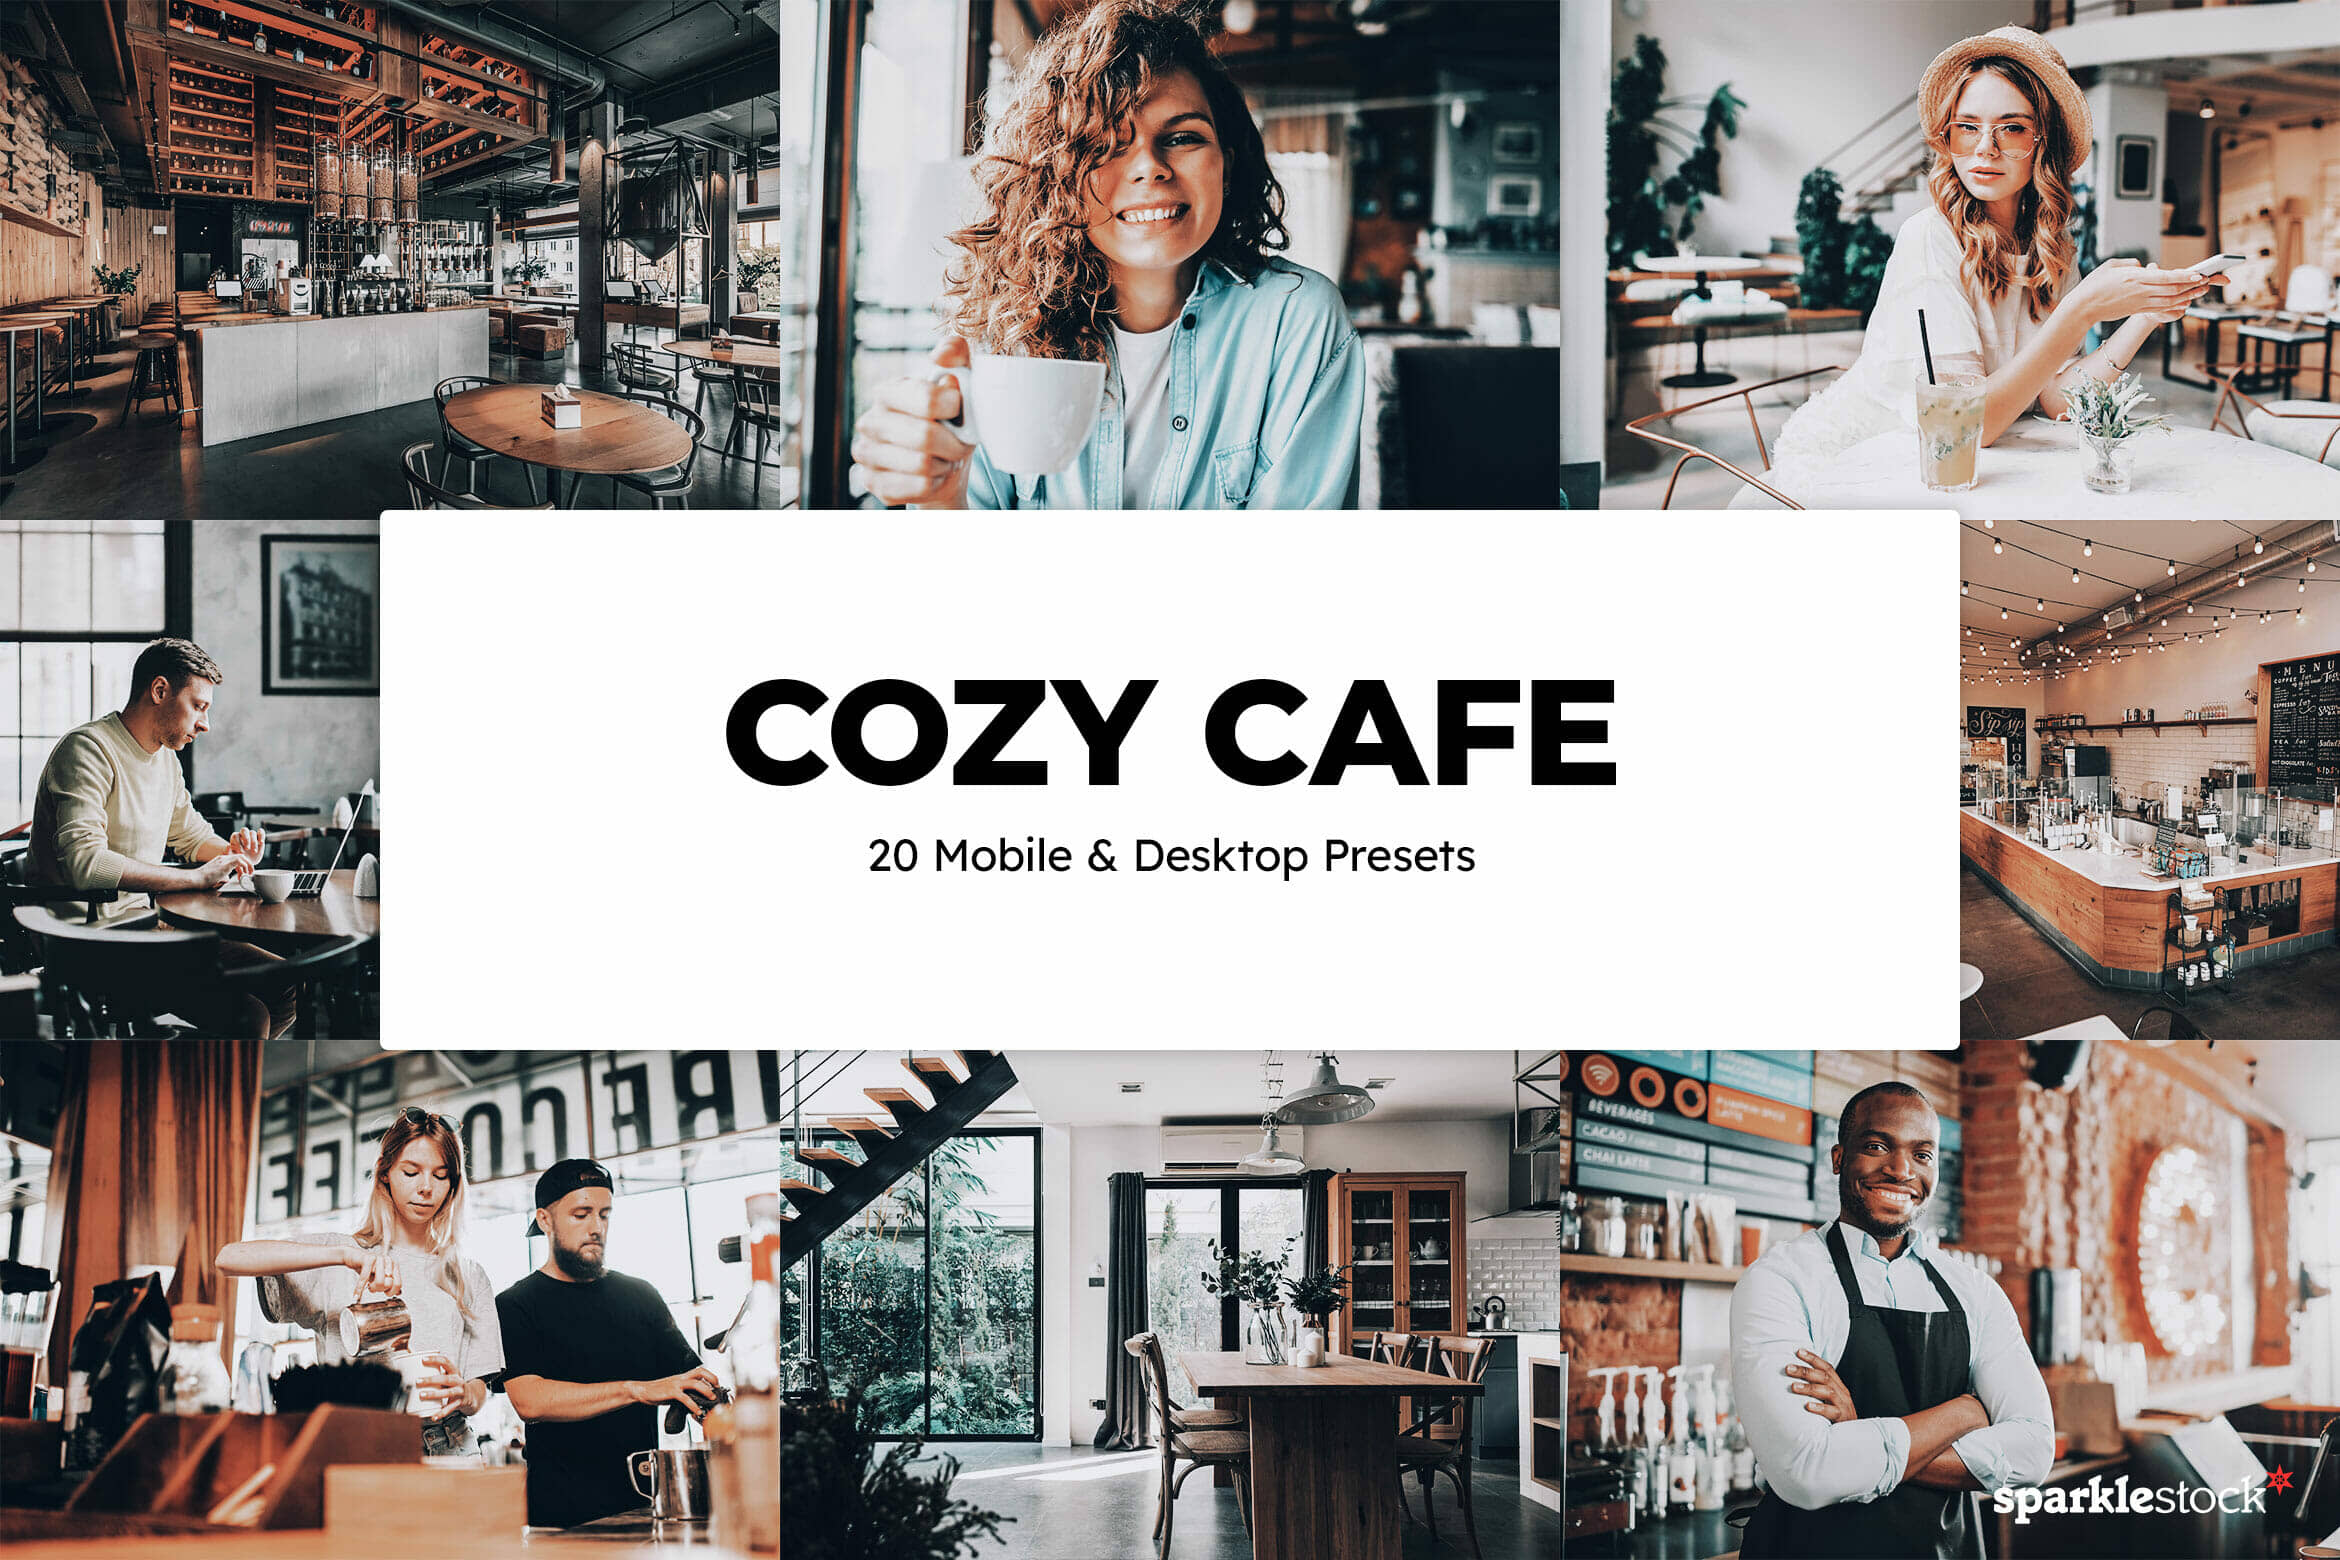 8 Free Cozy Cafe Lightroom Presets and LUTs